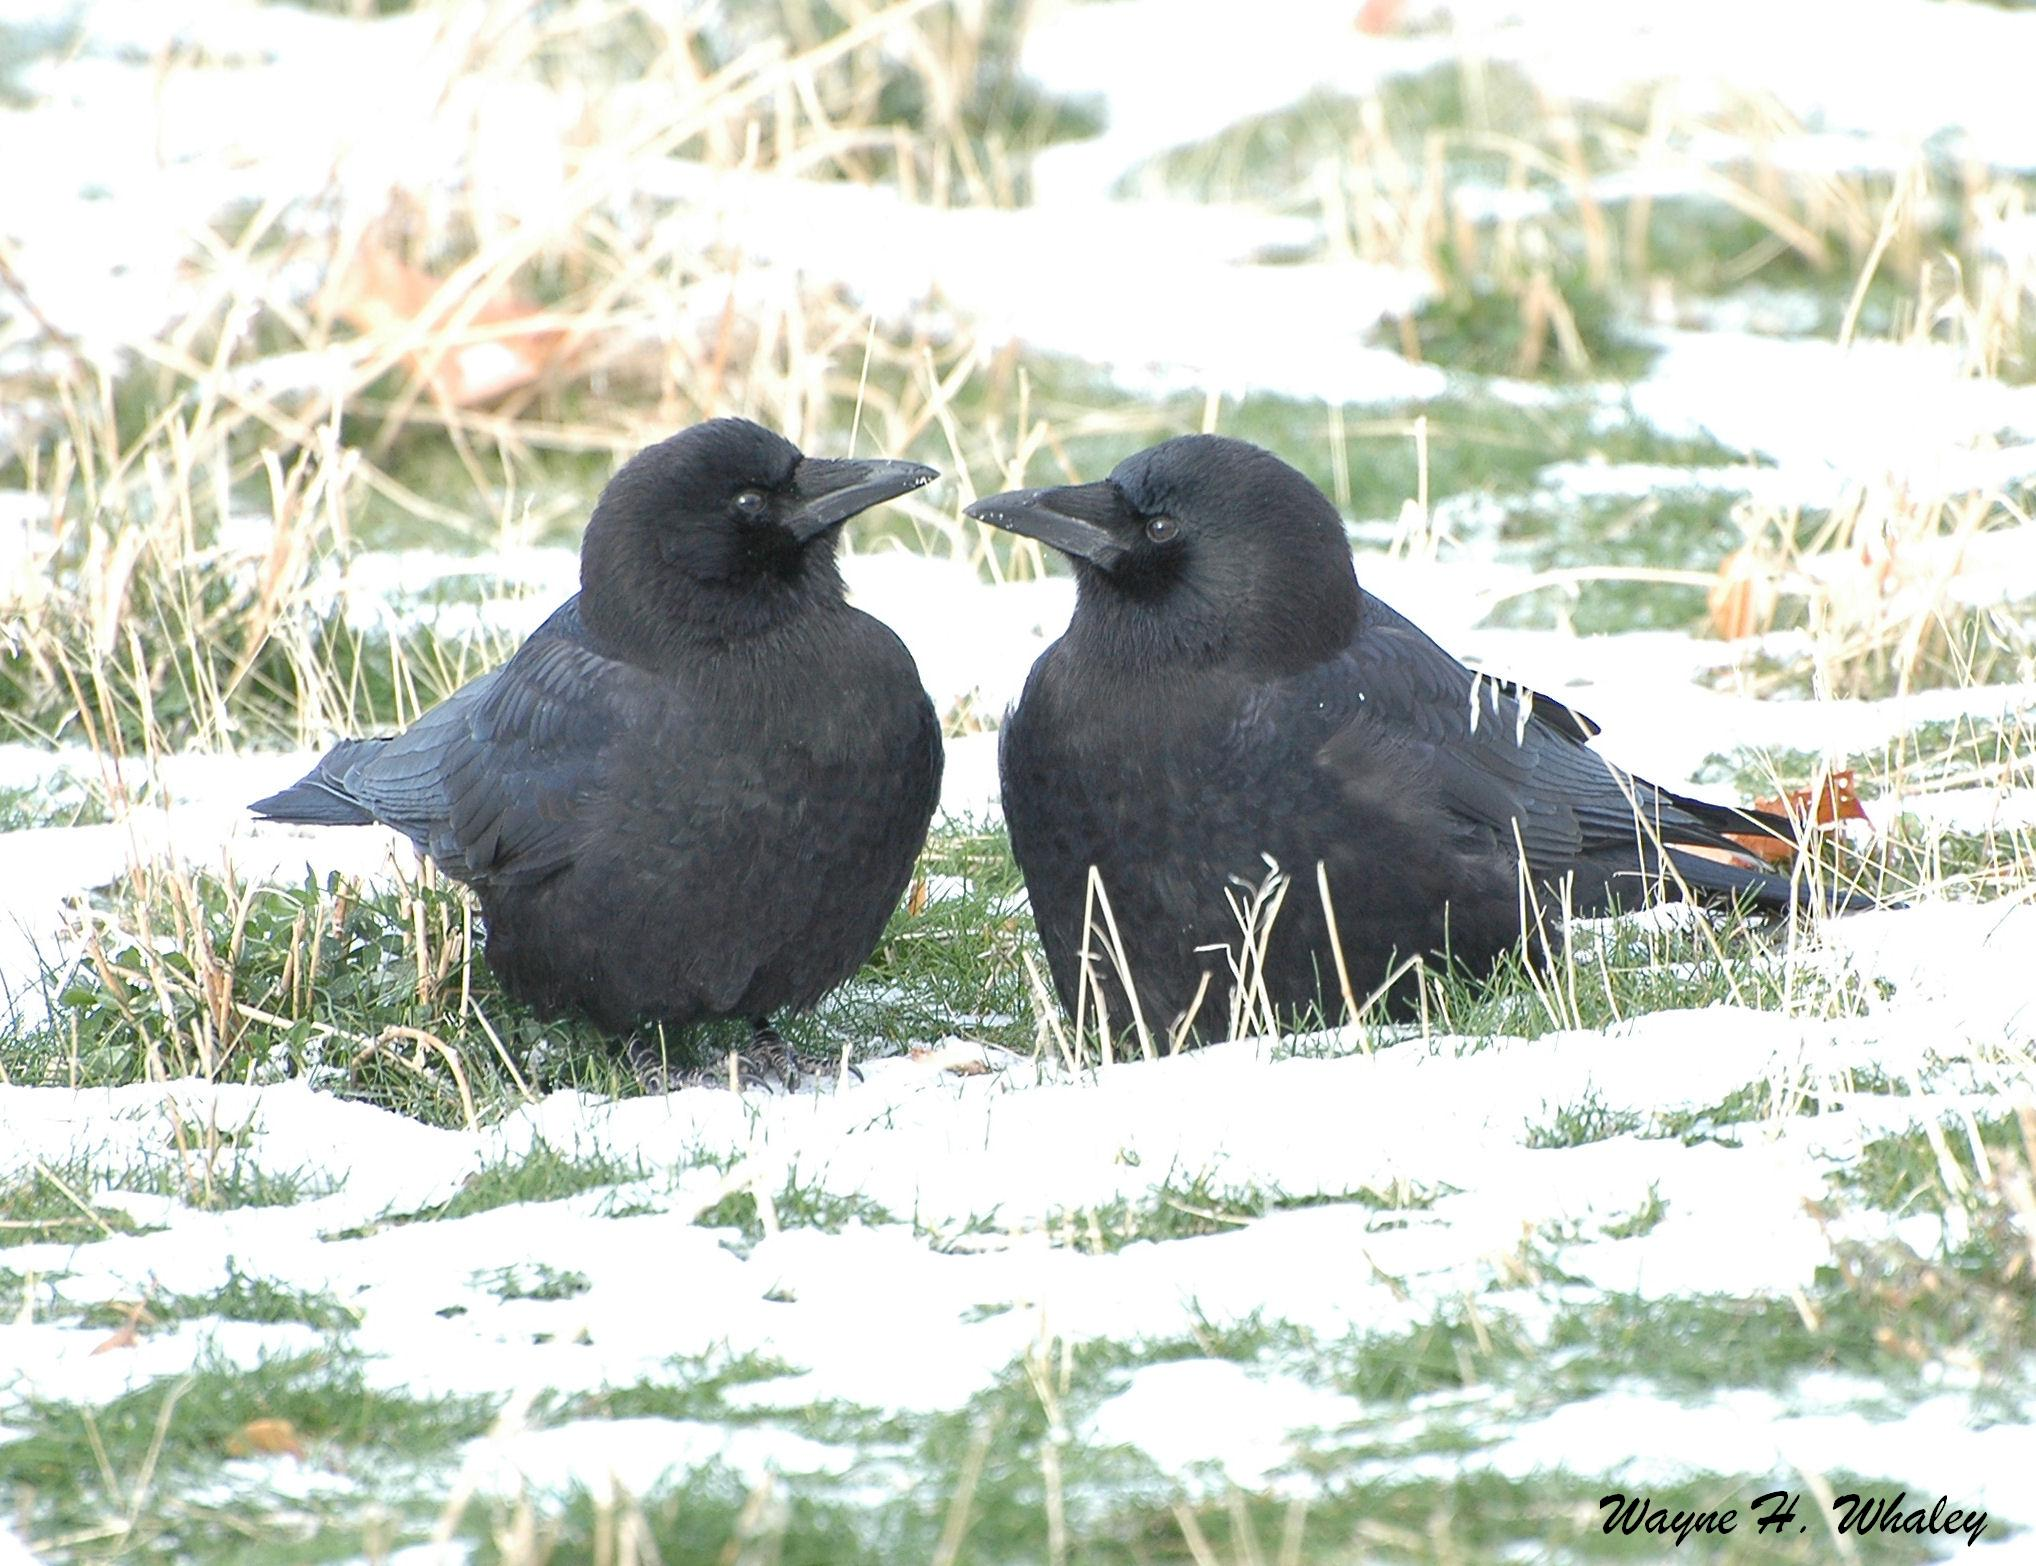 Raven vs crow vs grackle - photo#28